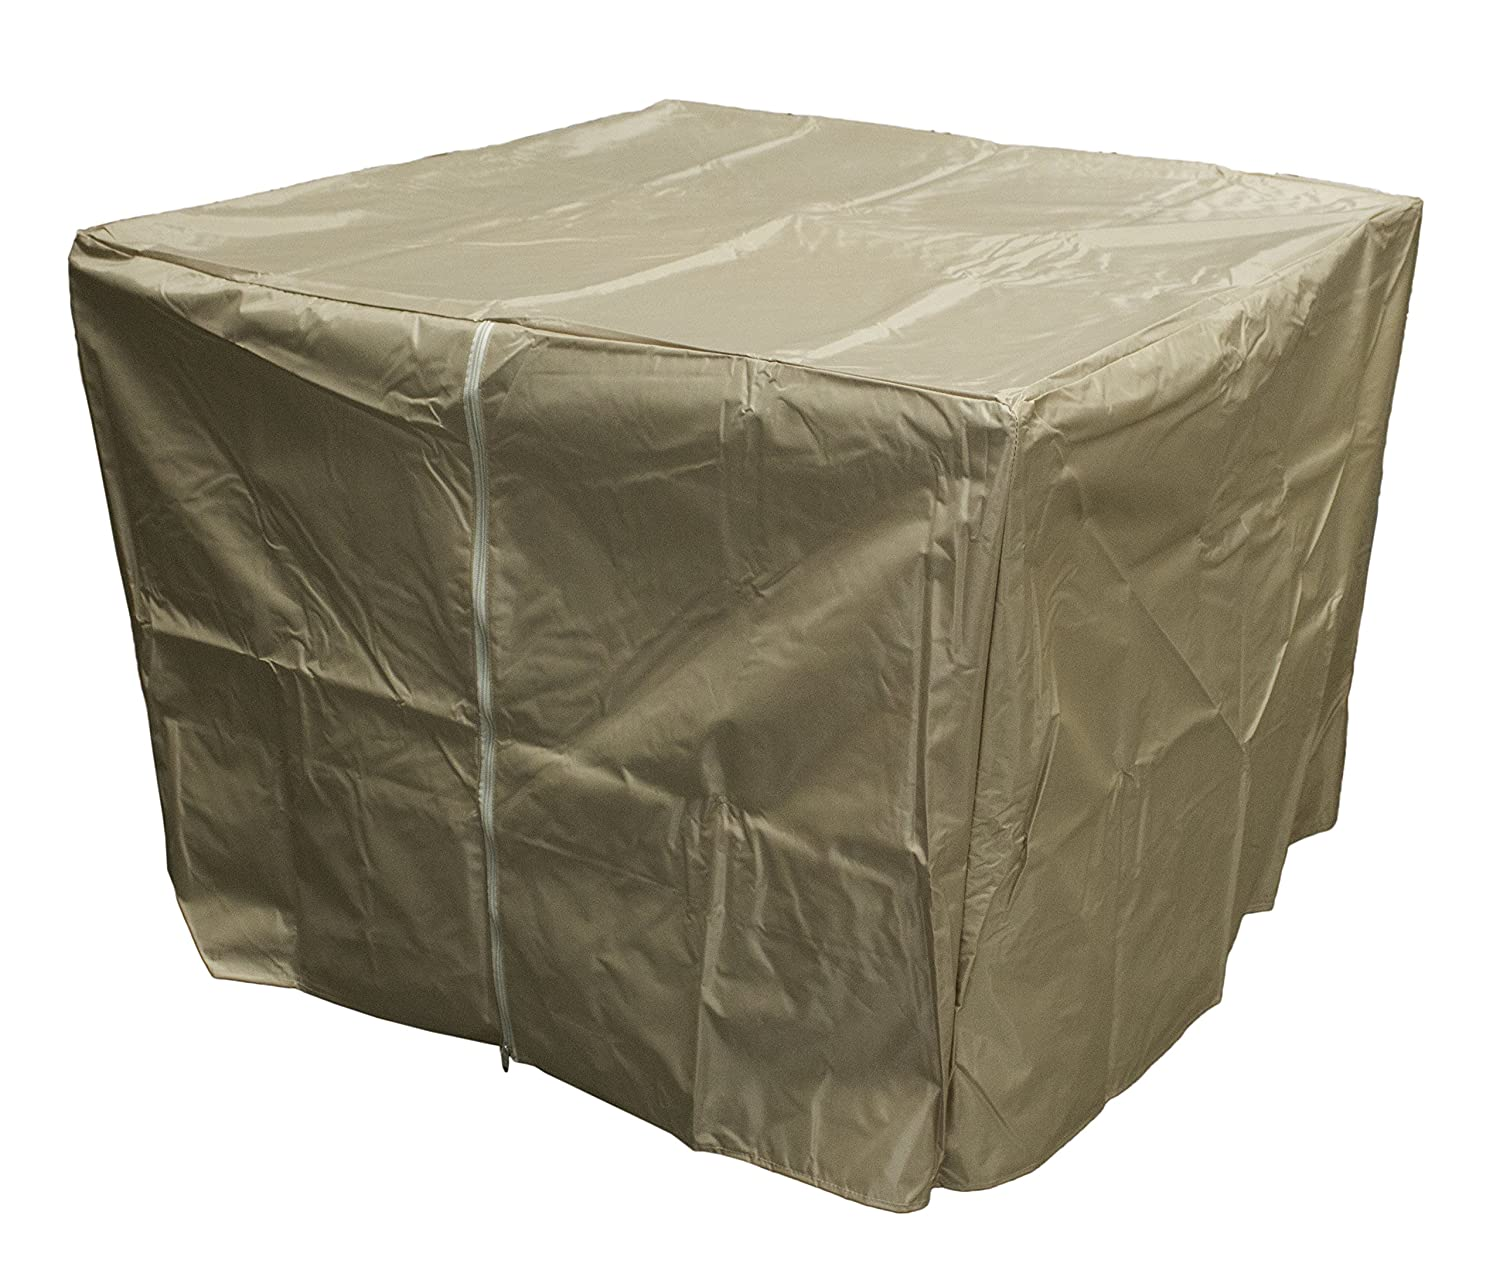 Amazon.com: AZ Patio Heater Heavy Duty Waterproof Propane Fire Pit Cover    39 X 39 X 28   Tan: Garden U0026 Outdoor